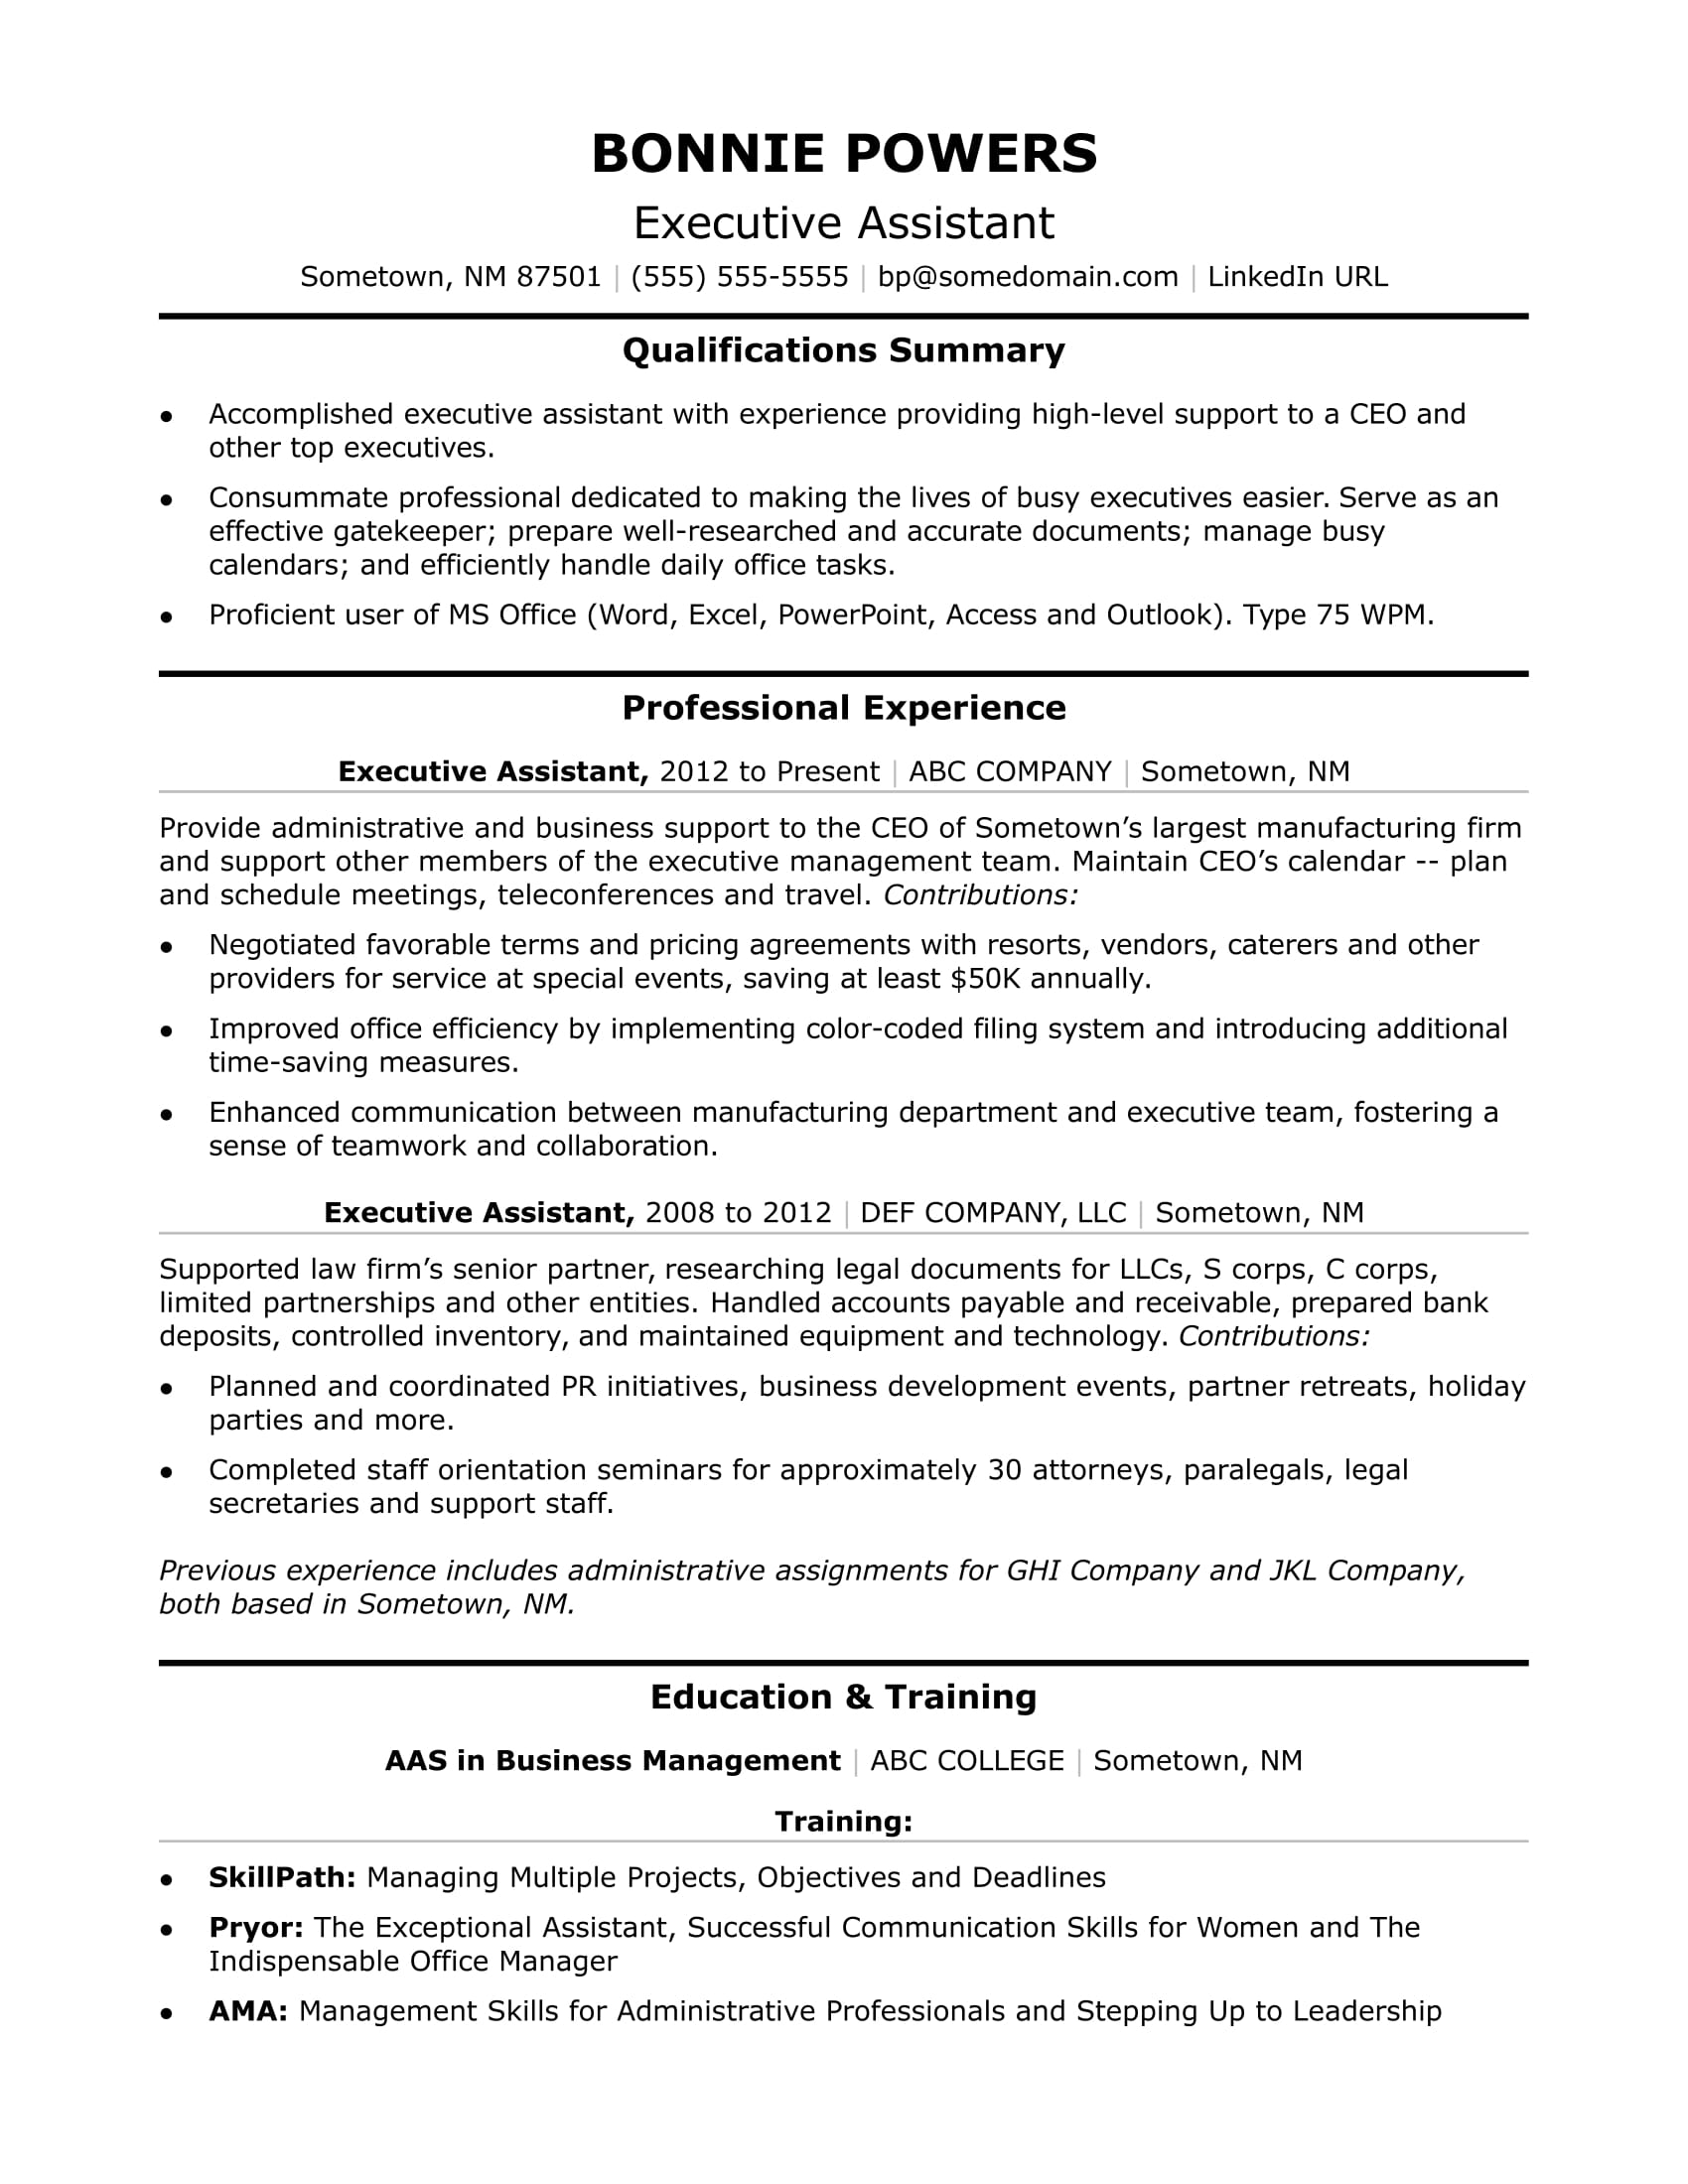 executive administrative assistant resume sample - Office Assistant Resume Sample